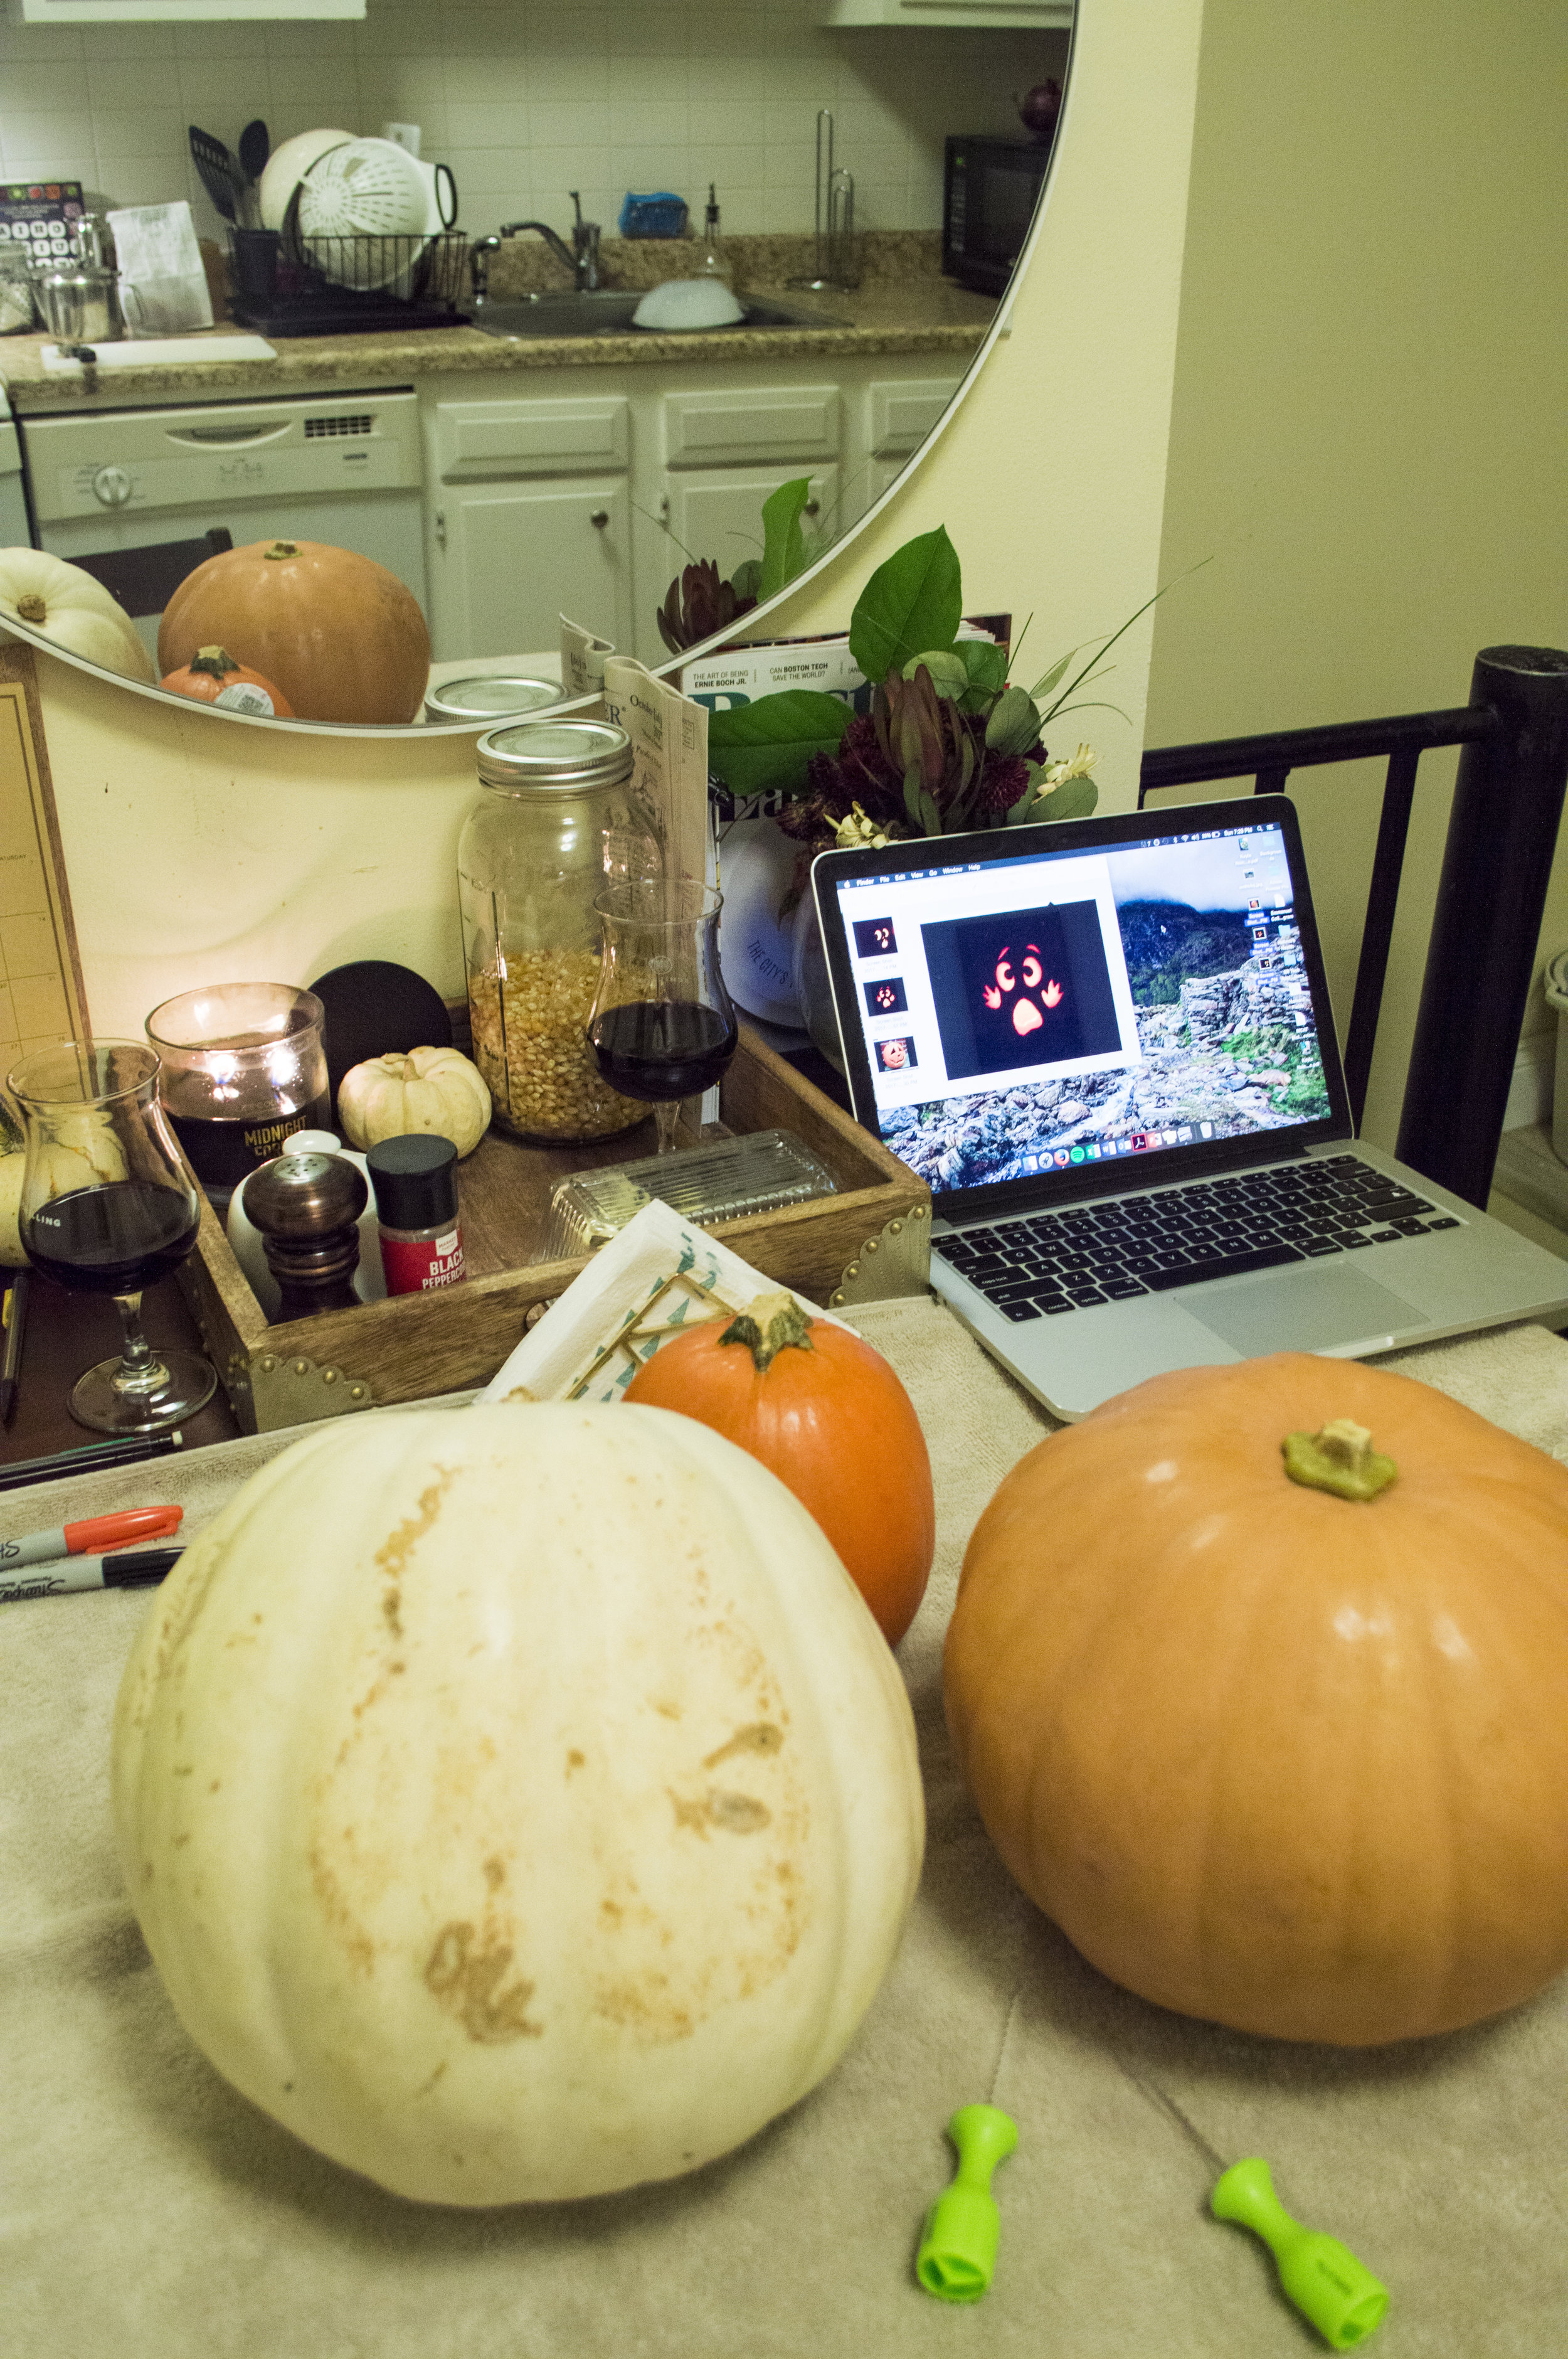 we looked up a few images for some inspiration before drawing our own faces onto our pumpkins